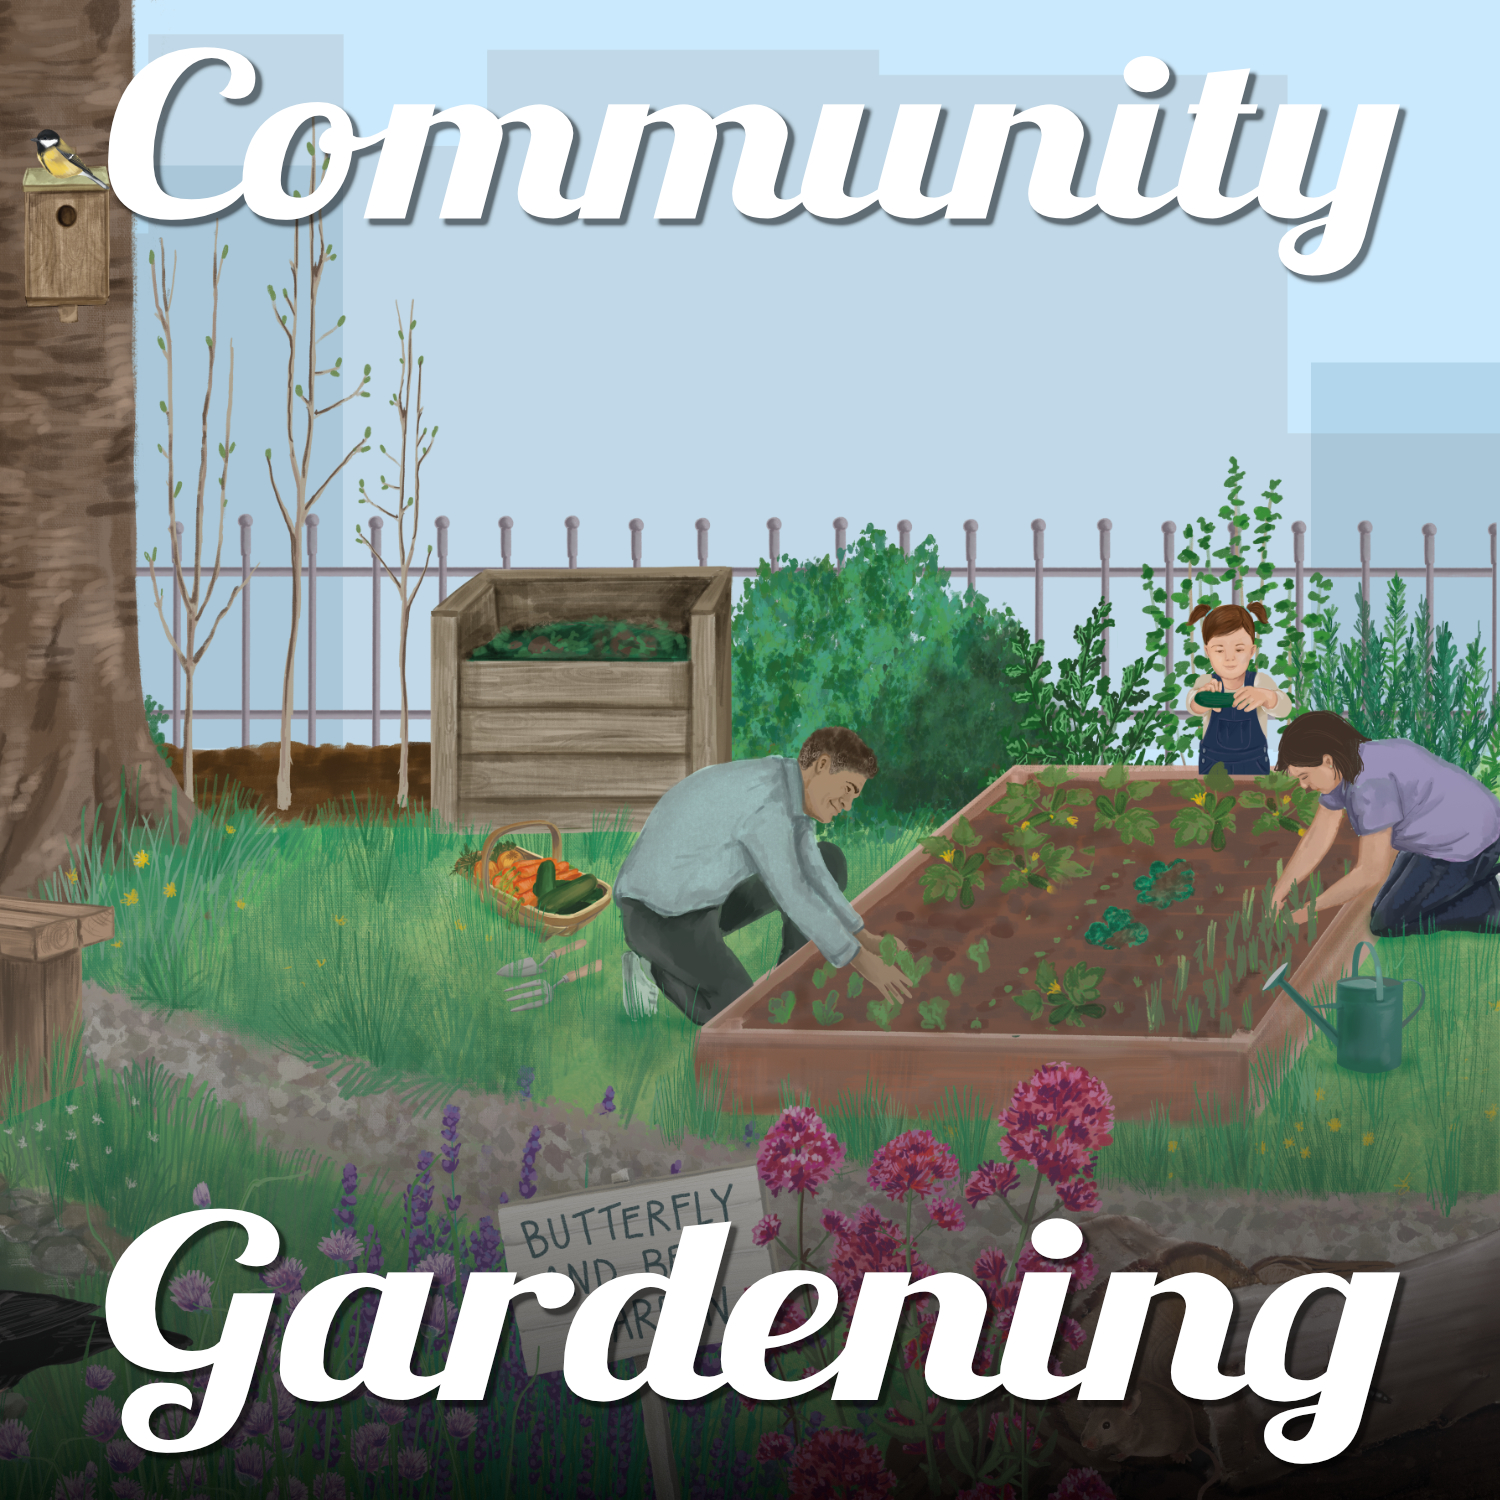 An illustration of a family planting up a raised bed in their garden and nature all around. Text reads 'Community Gardening'.